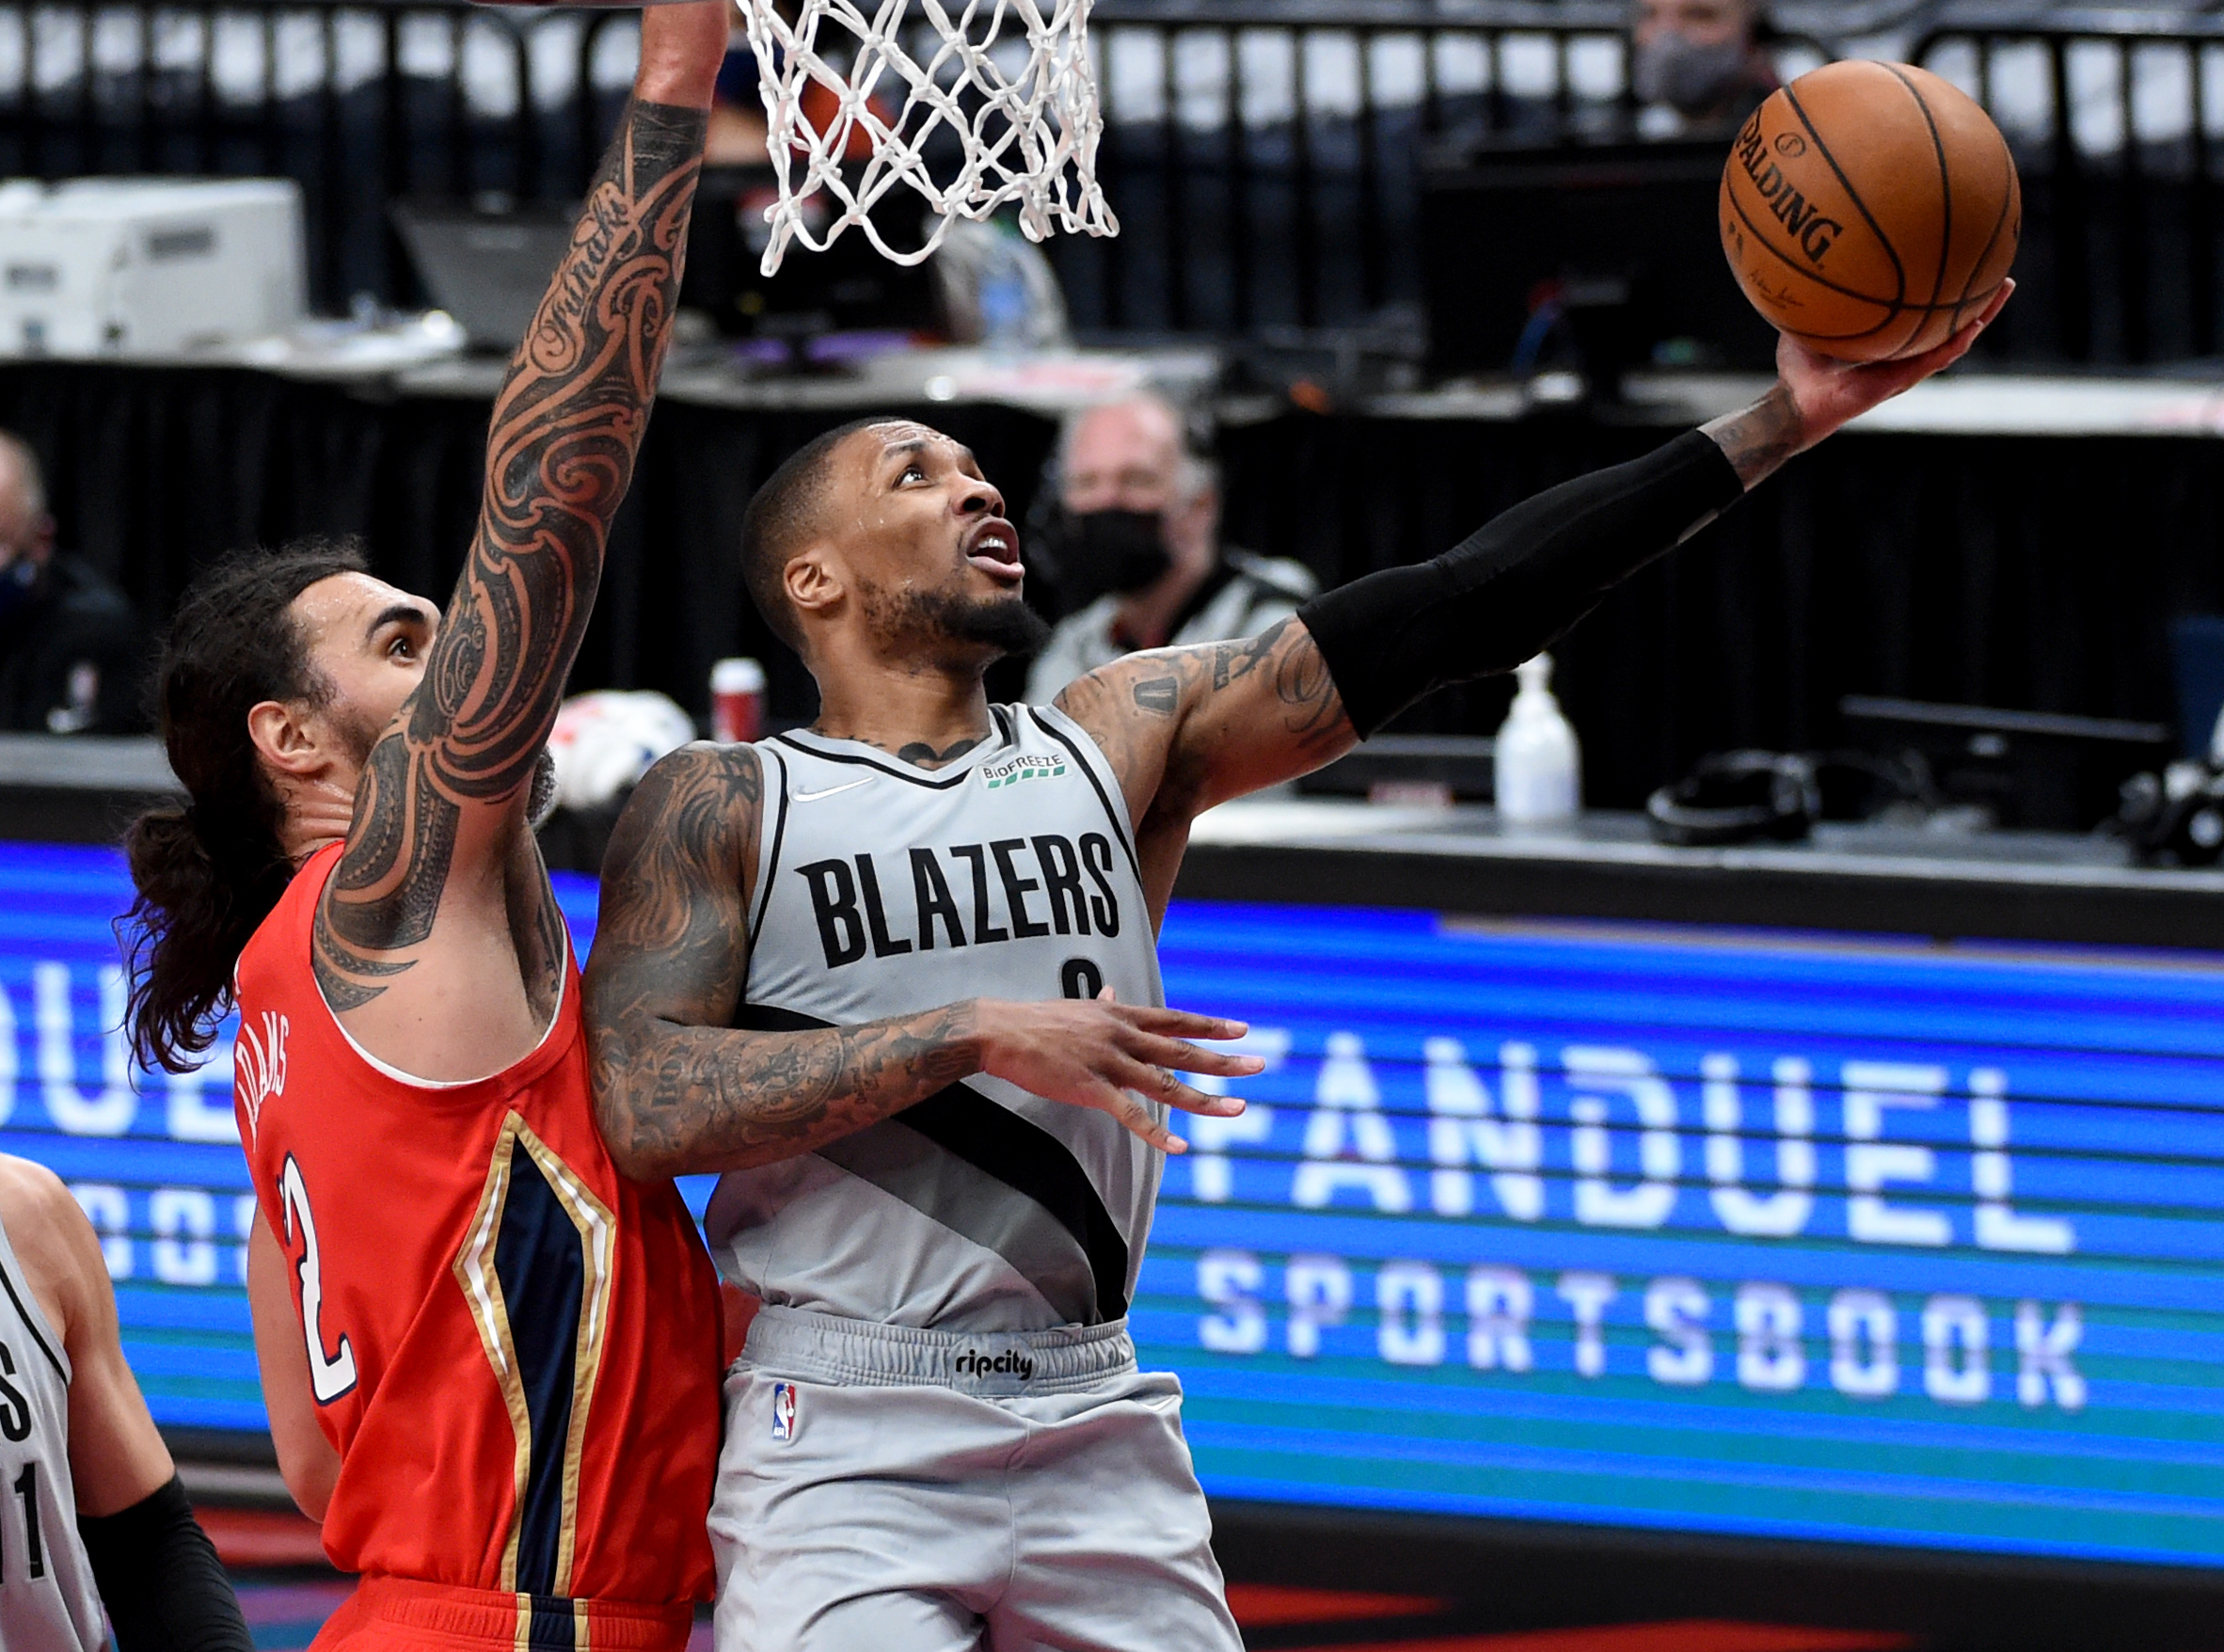 Damian Lillard of the Portland Trail Blazers drives to the basket on Steven Adams of the New Orleans Pelicans